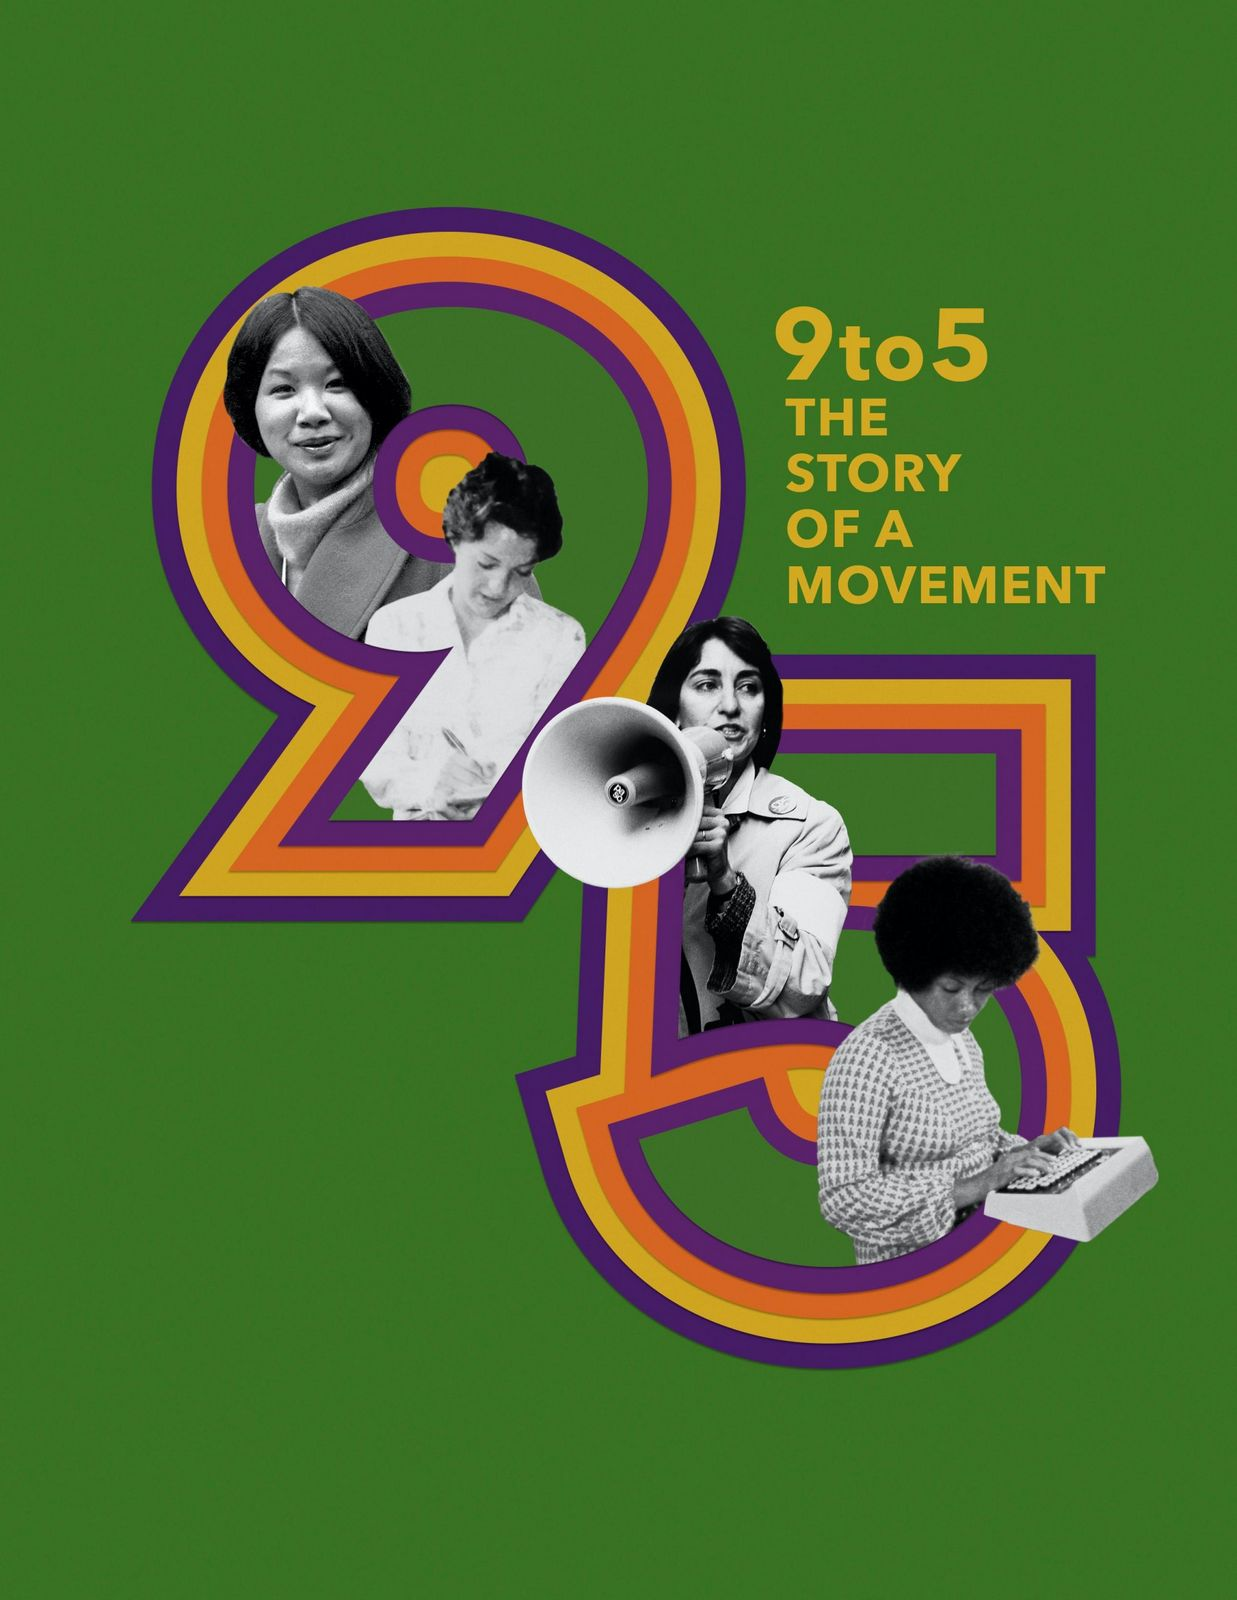 9 to 5 - The Story of a Movement.jpg